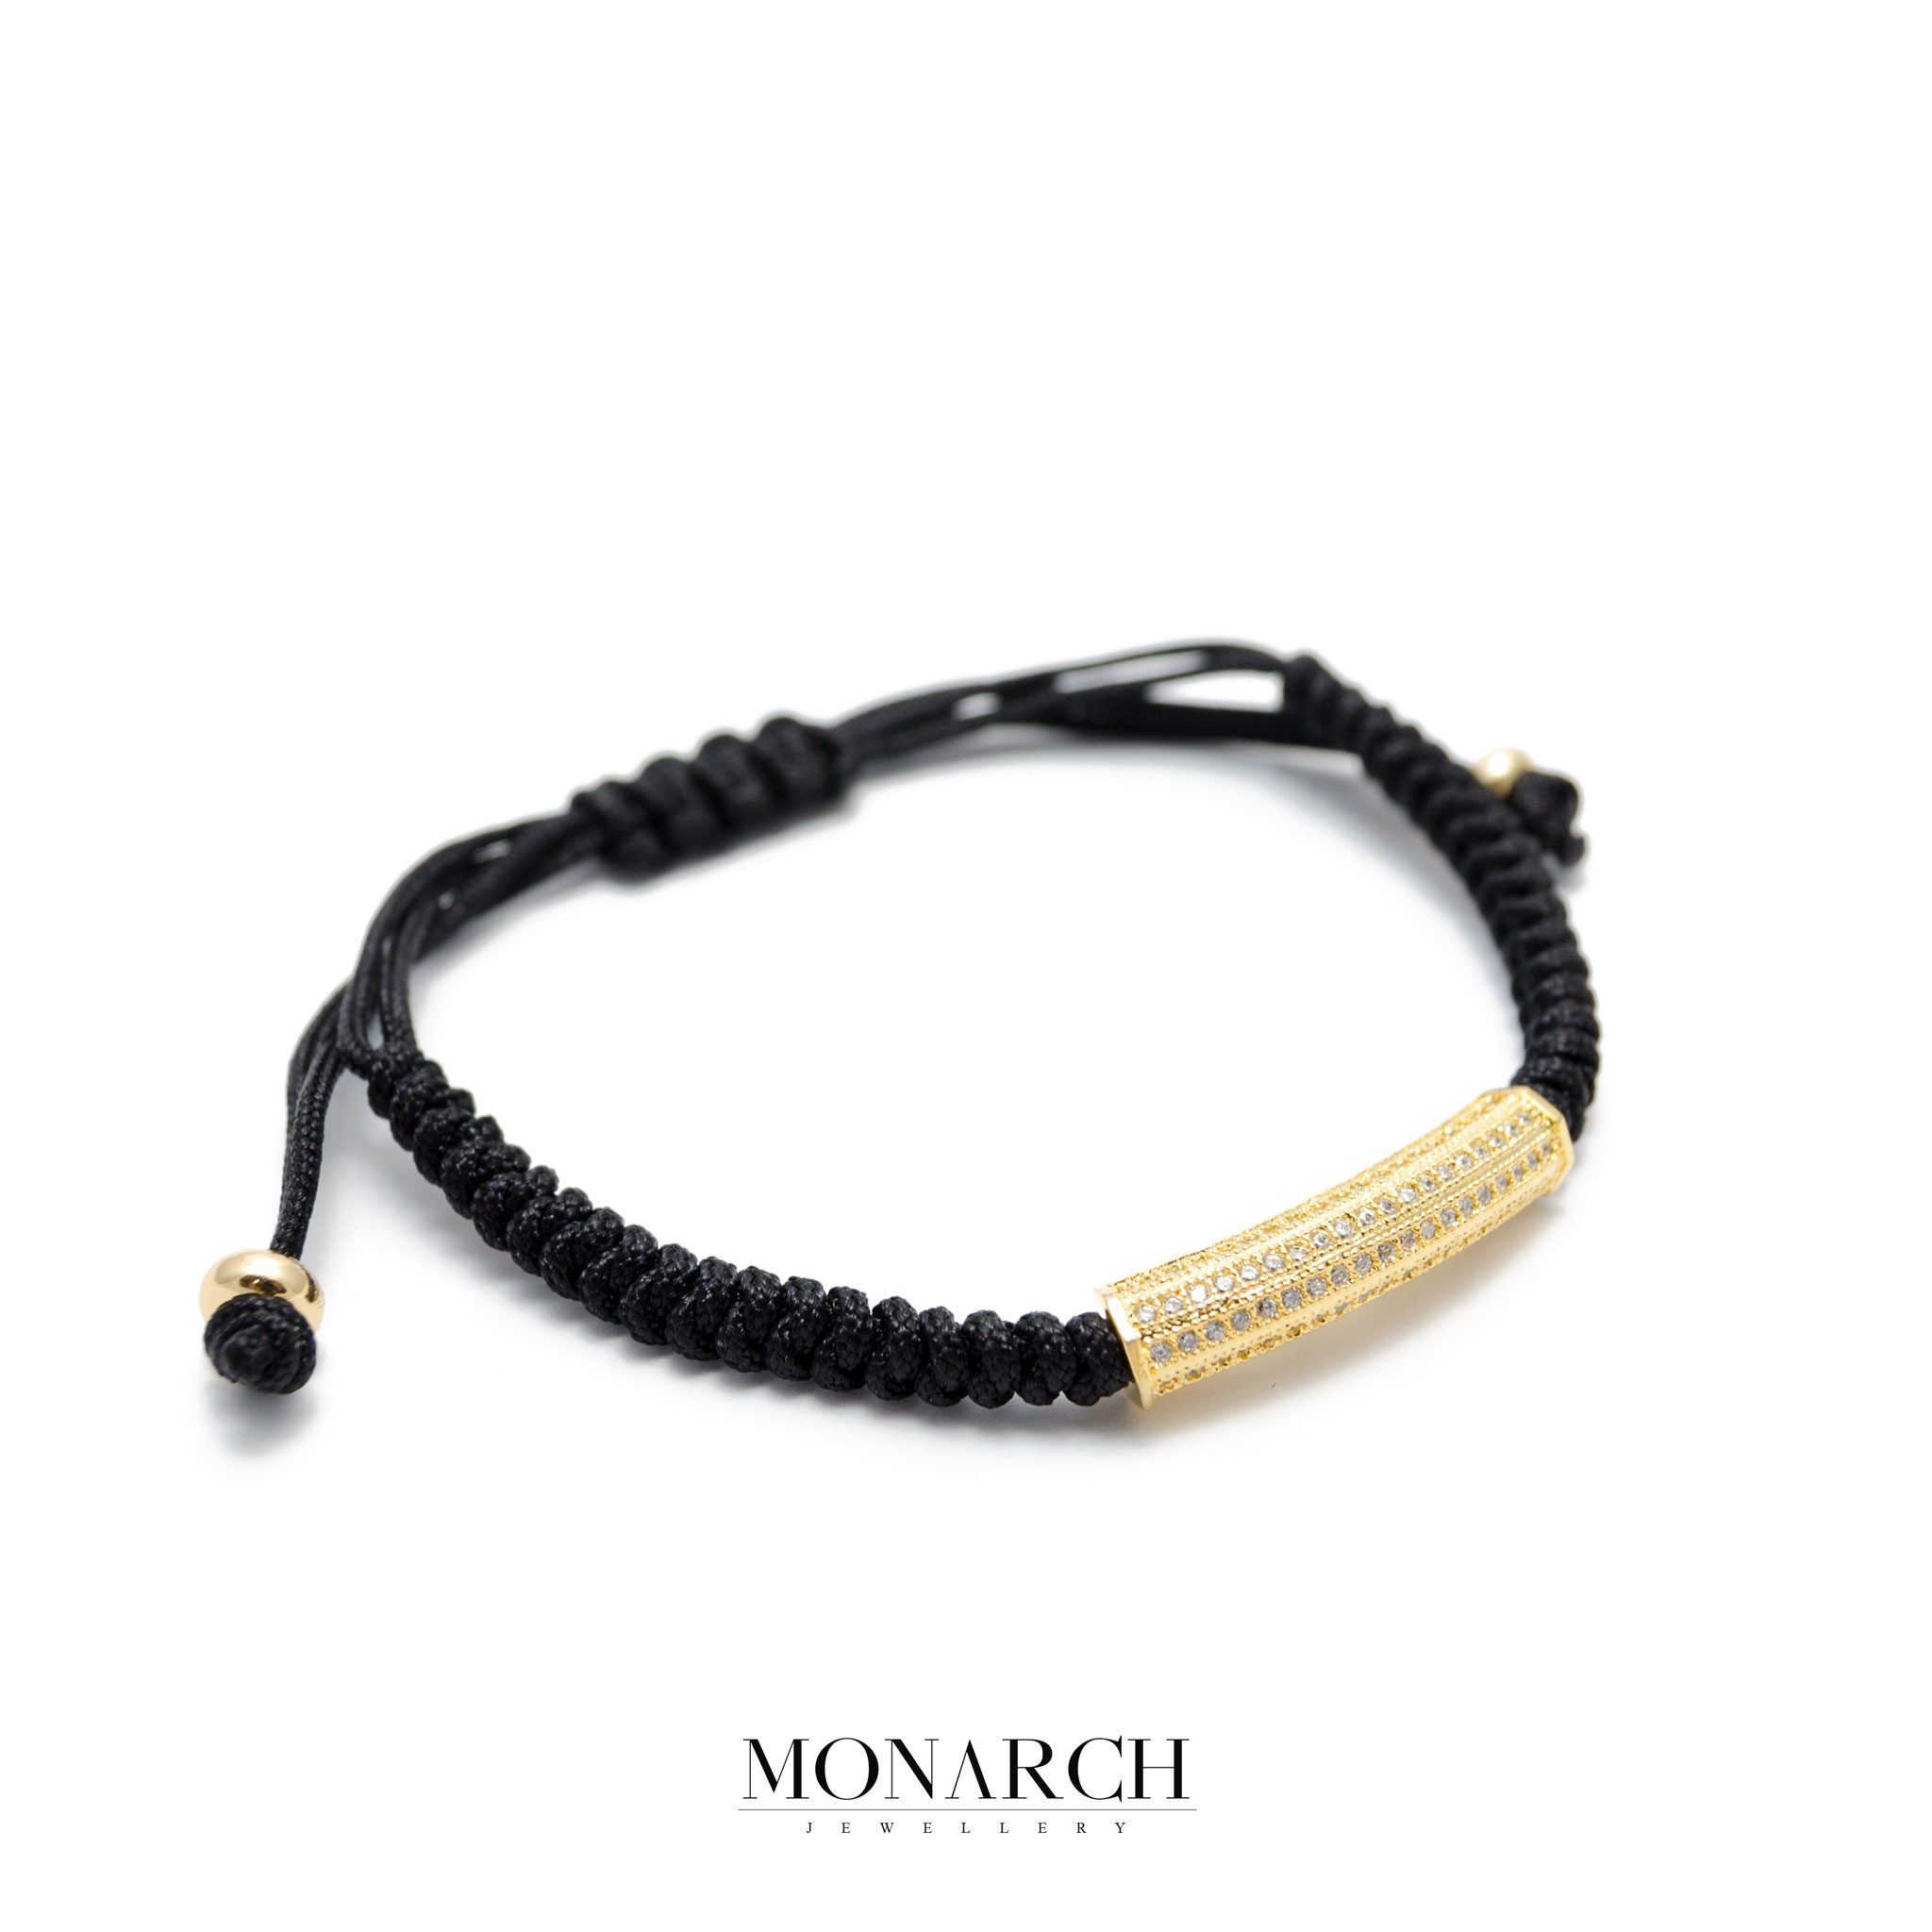 Monarch Jewellery Gold Micro Tube Charm Luxury Macrame Bracelet